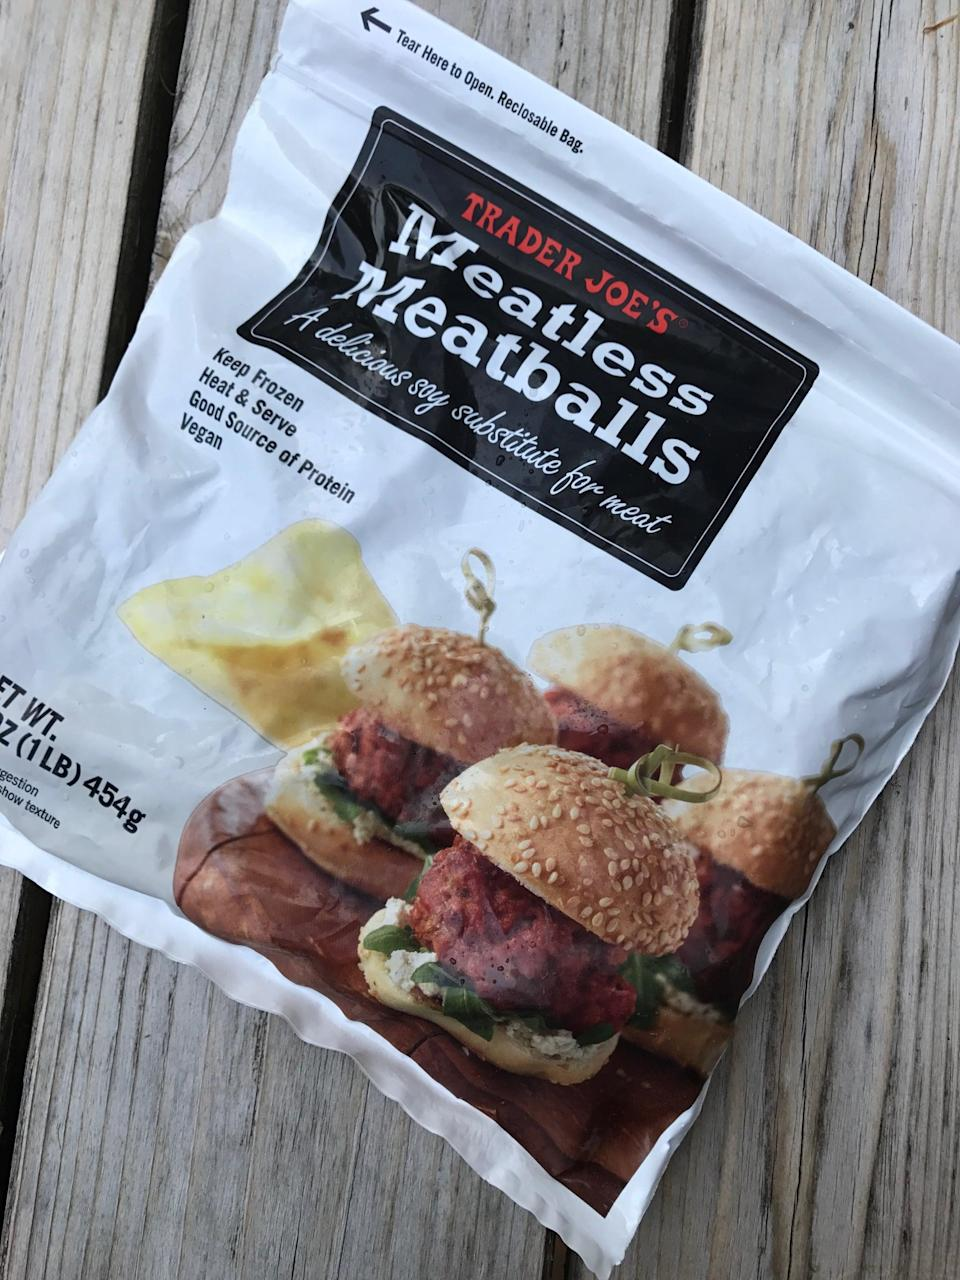 <p>A fast and delicious source of plant-based protein, these taste like real meatballs! Just microwave and add to pasta or whole grains, or pack for snacks. No need to spend time making your own.</p>